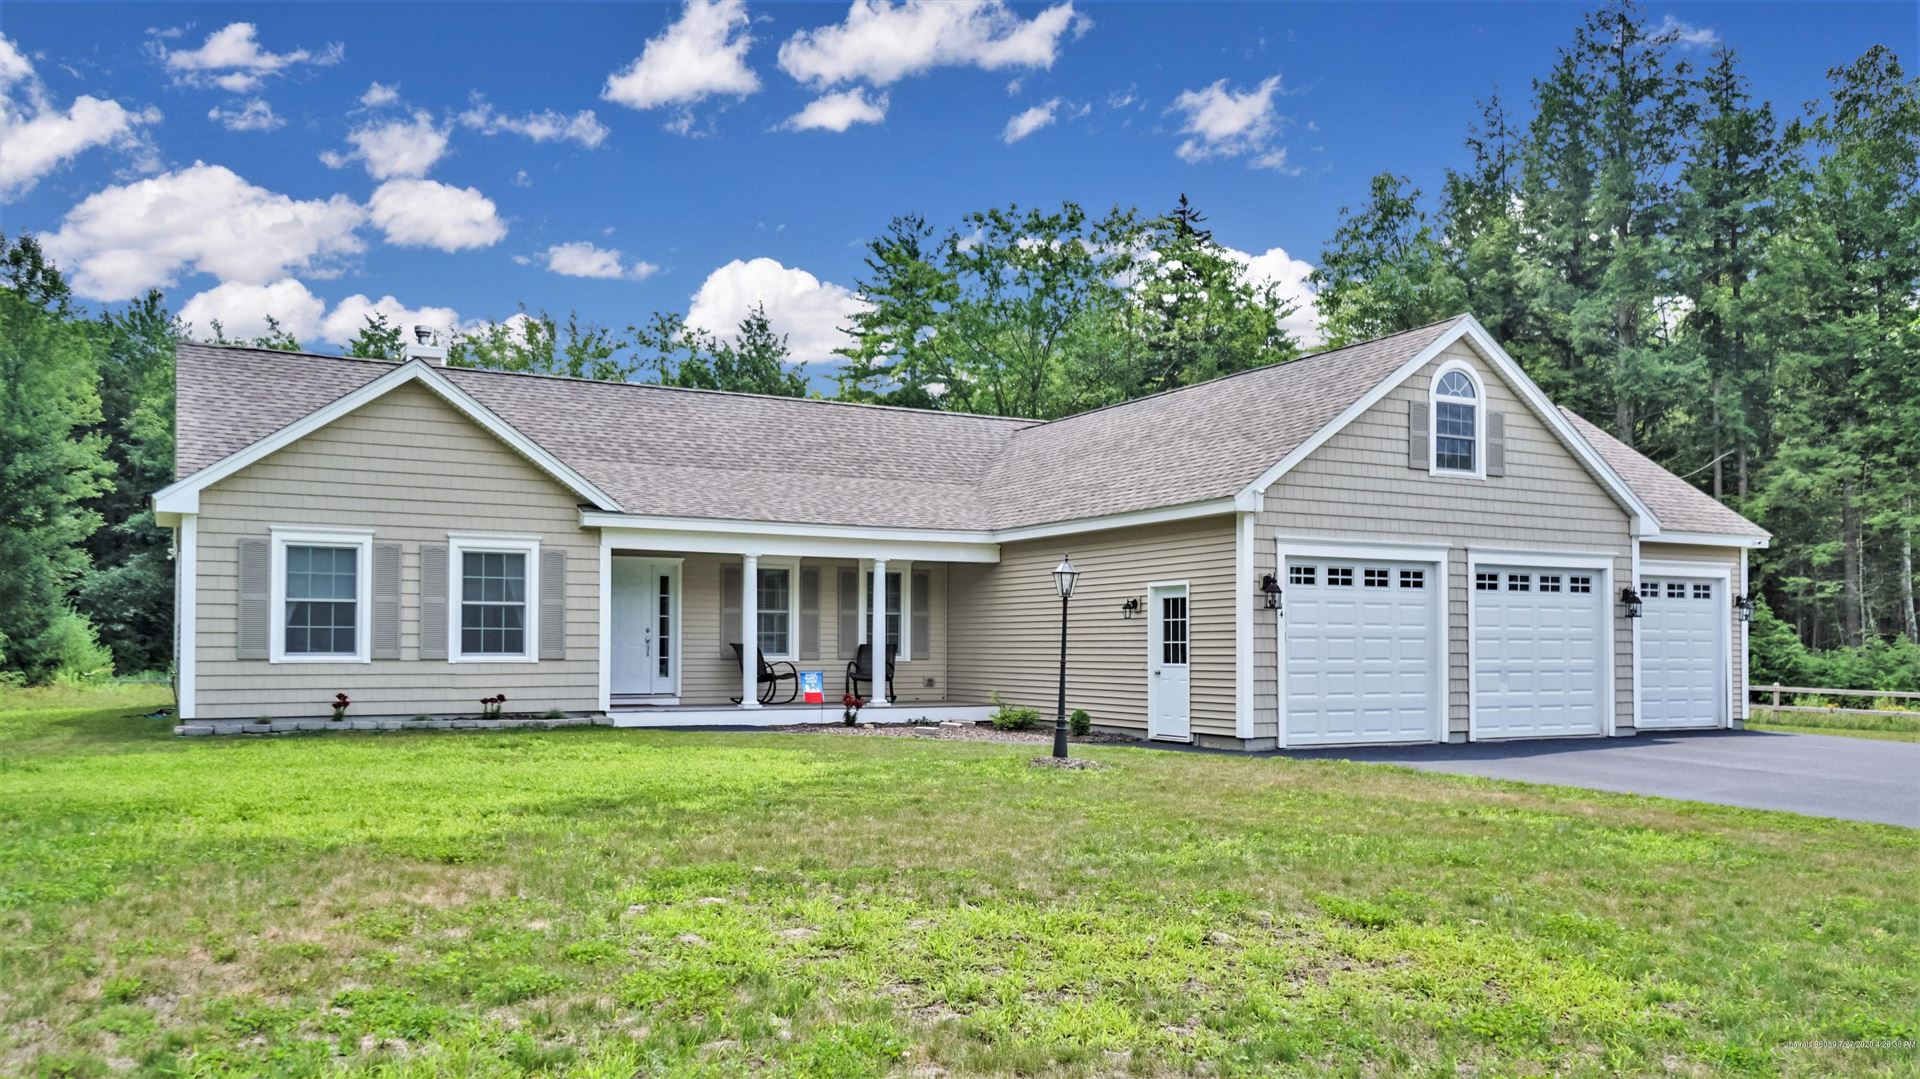 Photo of 14 Anthony Vail Way, Scarborough, ME 04074 (MLS # 1459821)